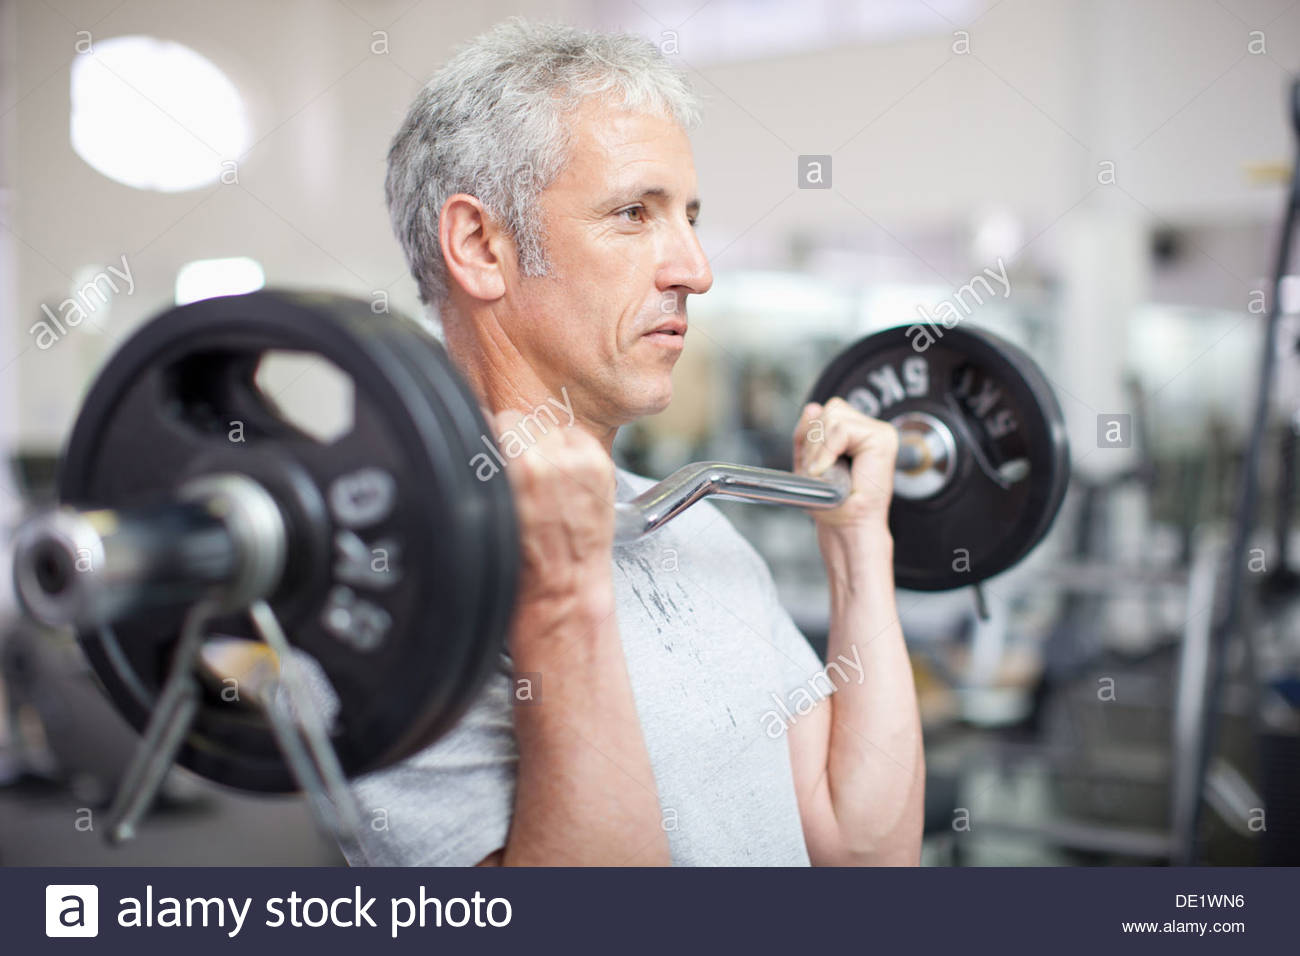 Portrait of smiling man holding barbell in gymnasium - Stock Image